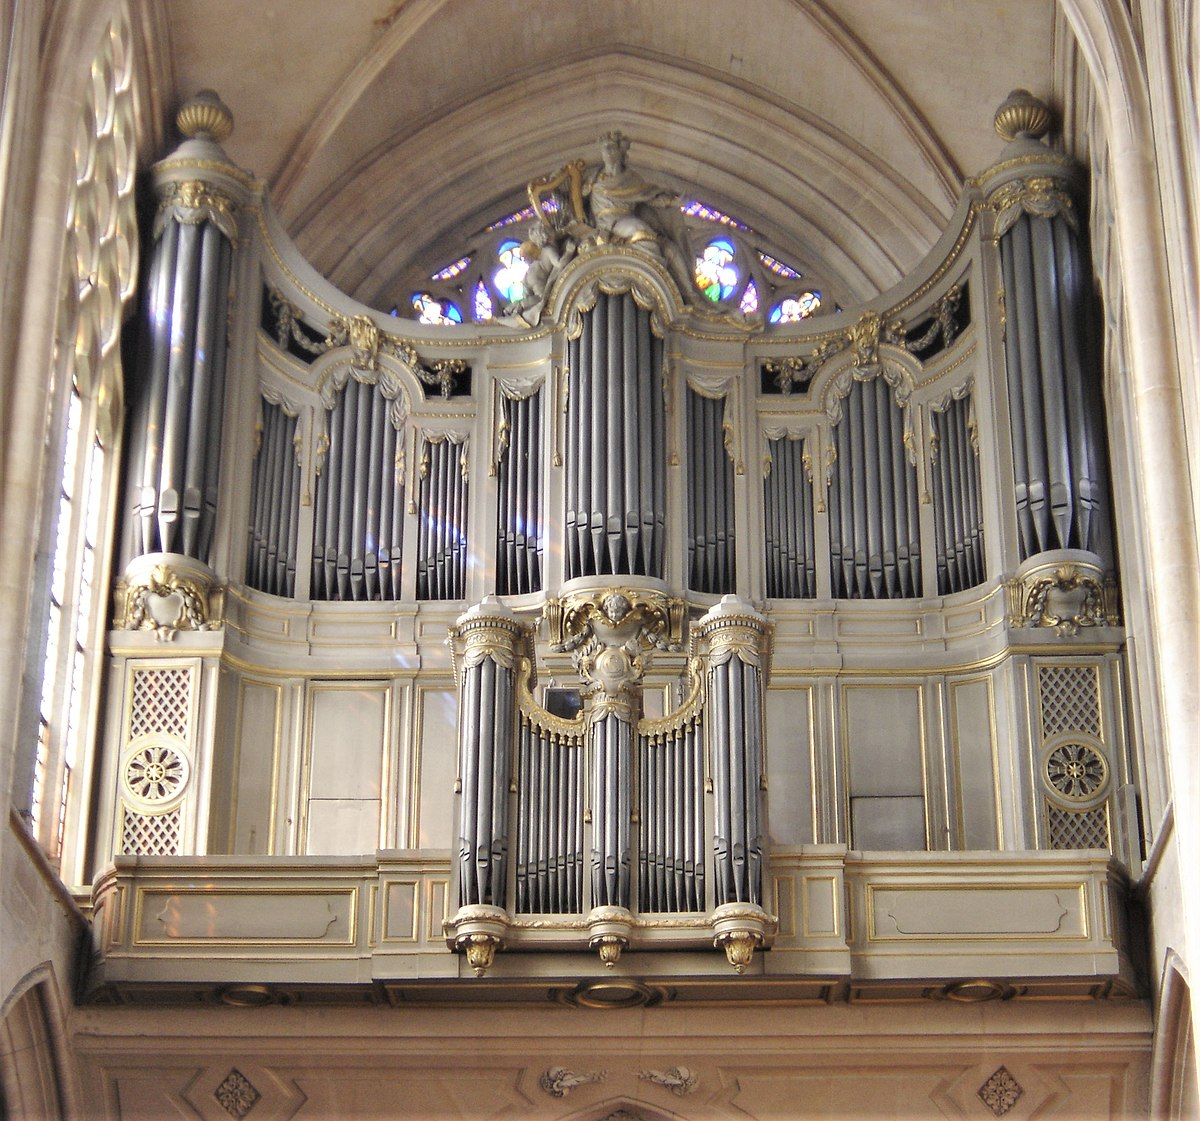 Early History of the Pipe Organ